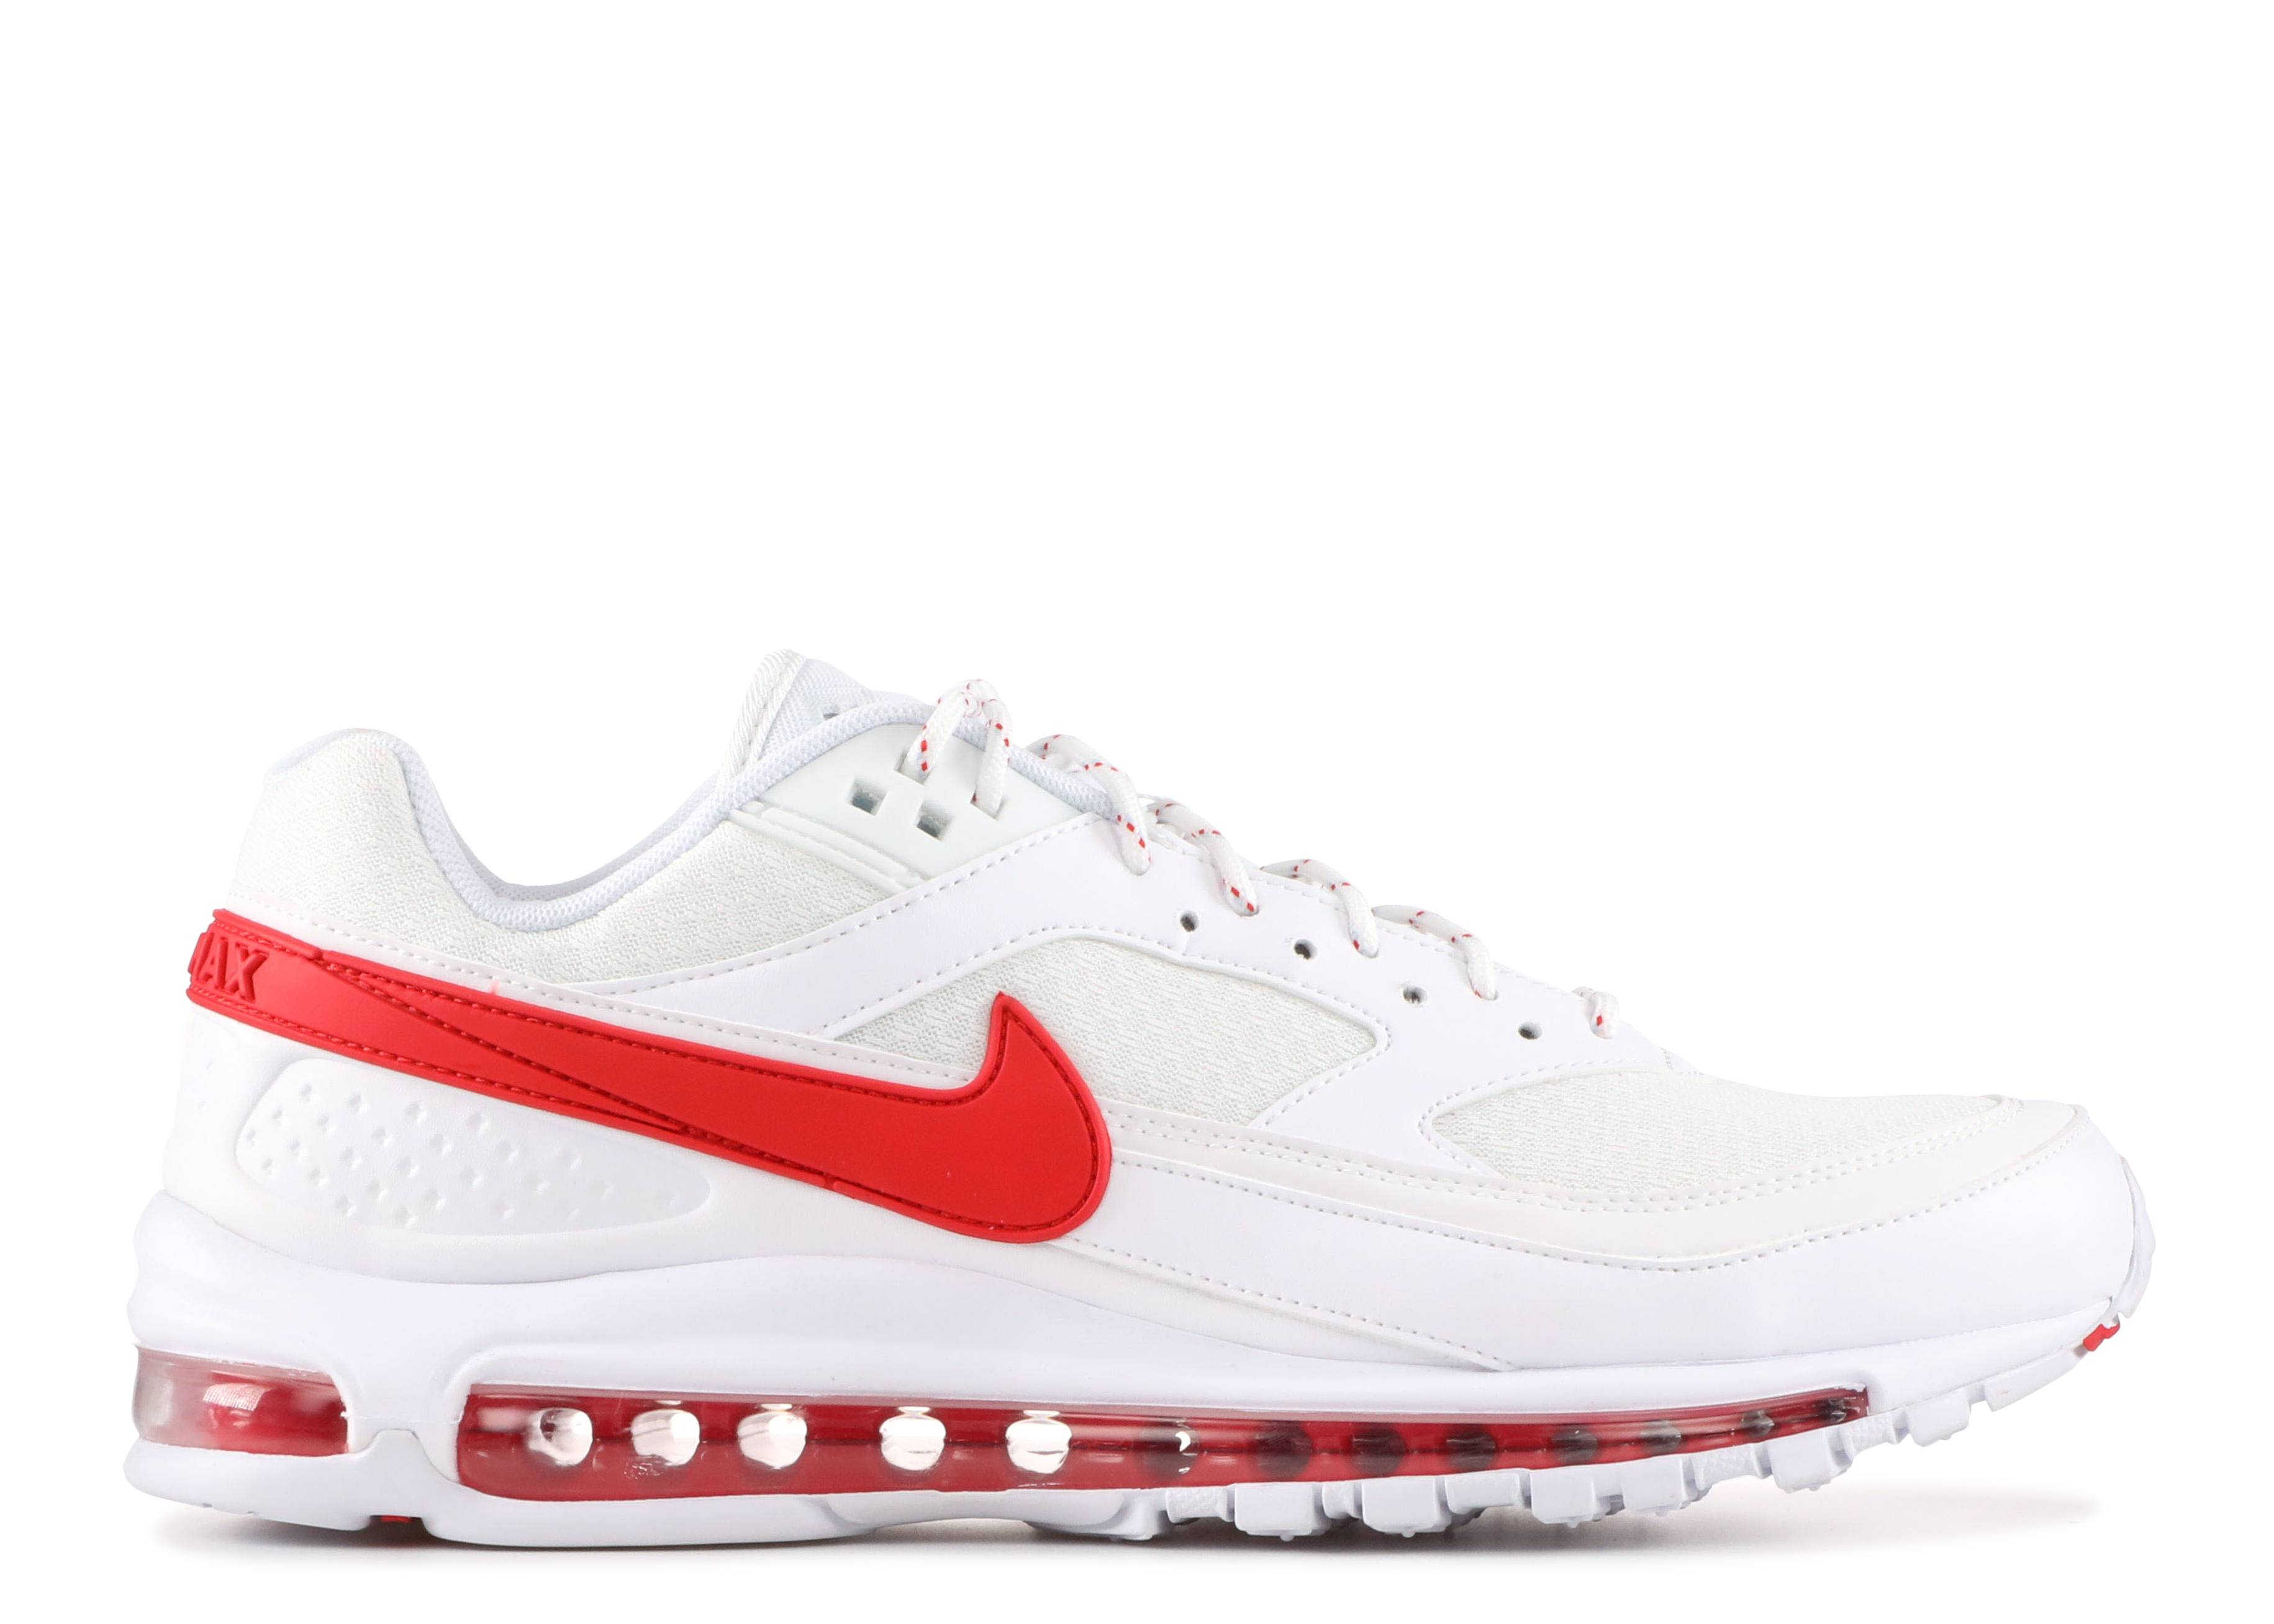 76d48d04ec54 Air Max 97 bw